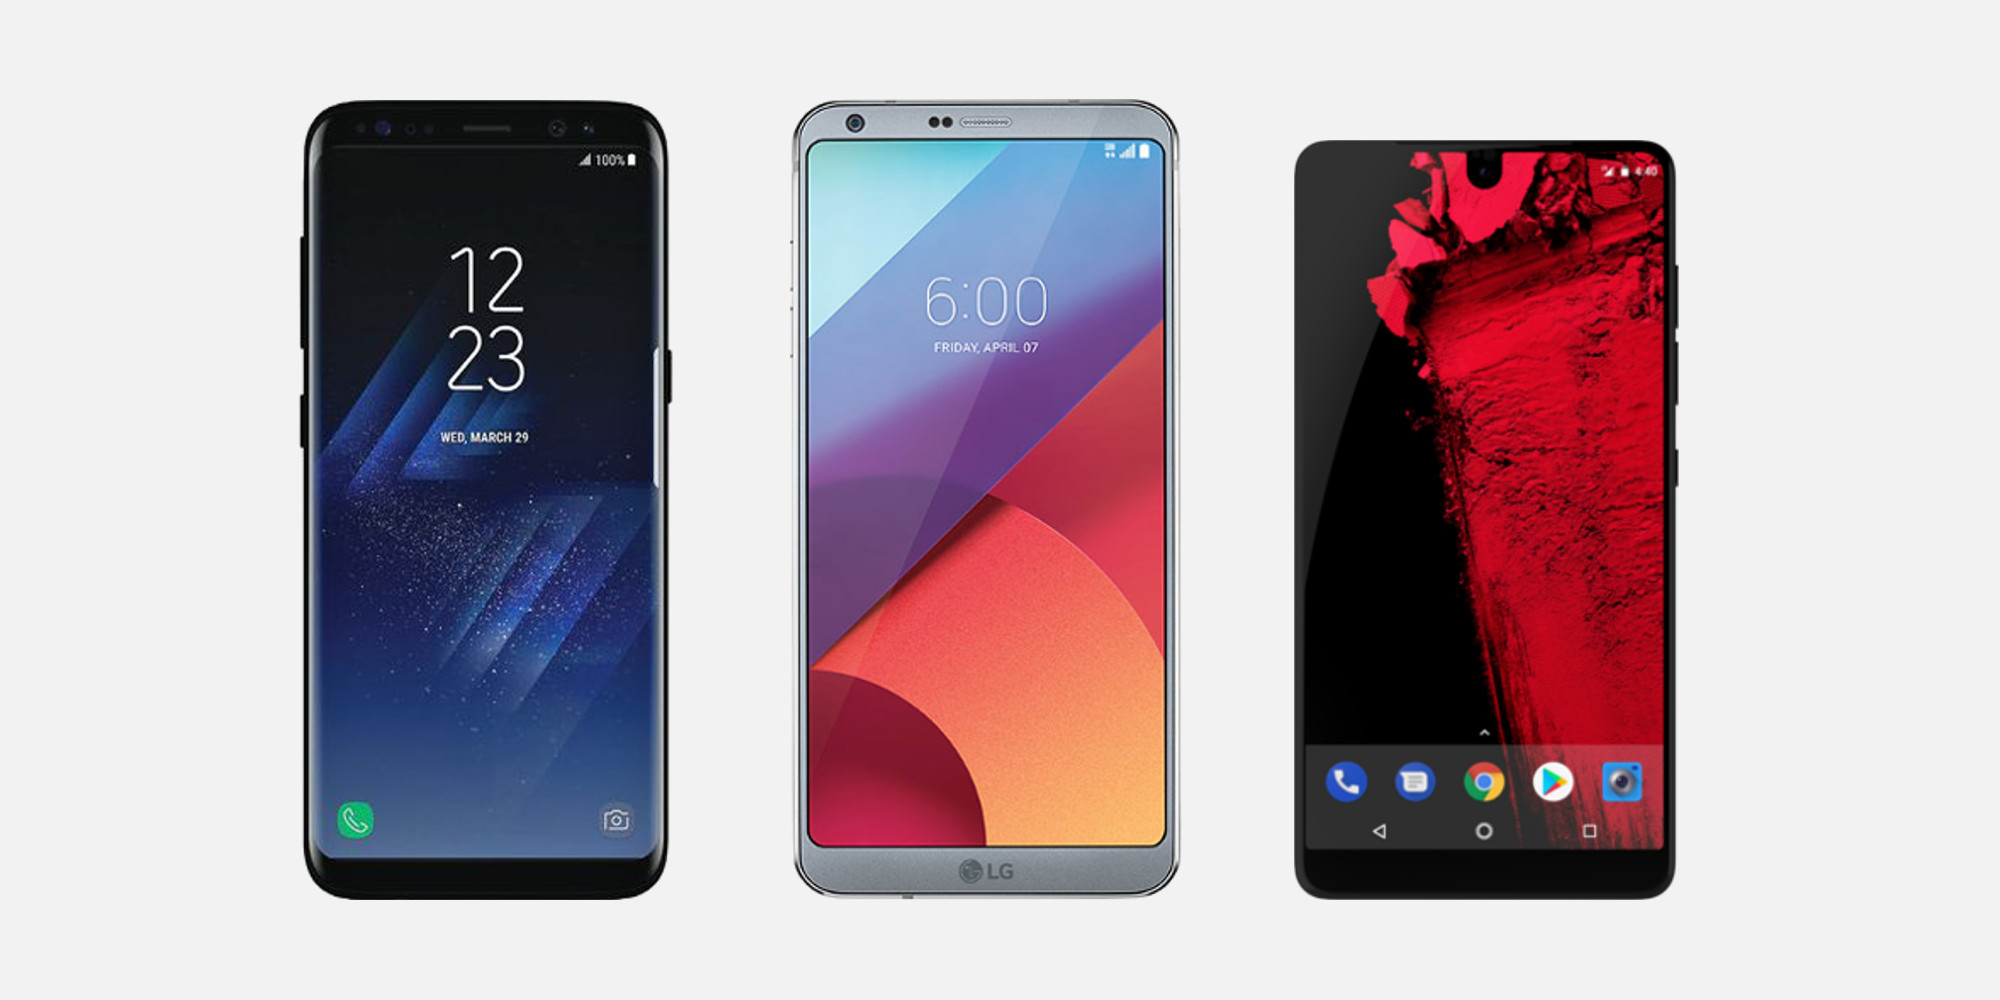 Samsung g5, LG L6 and PH-1